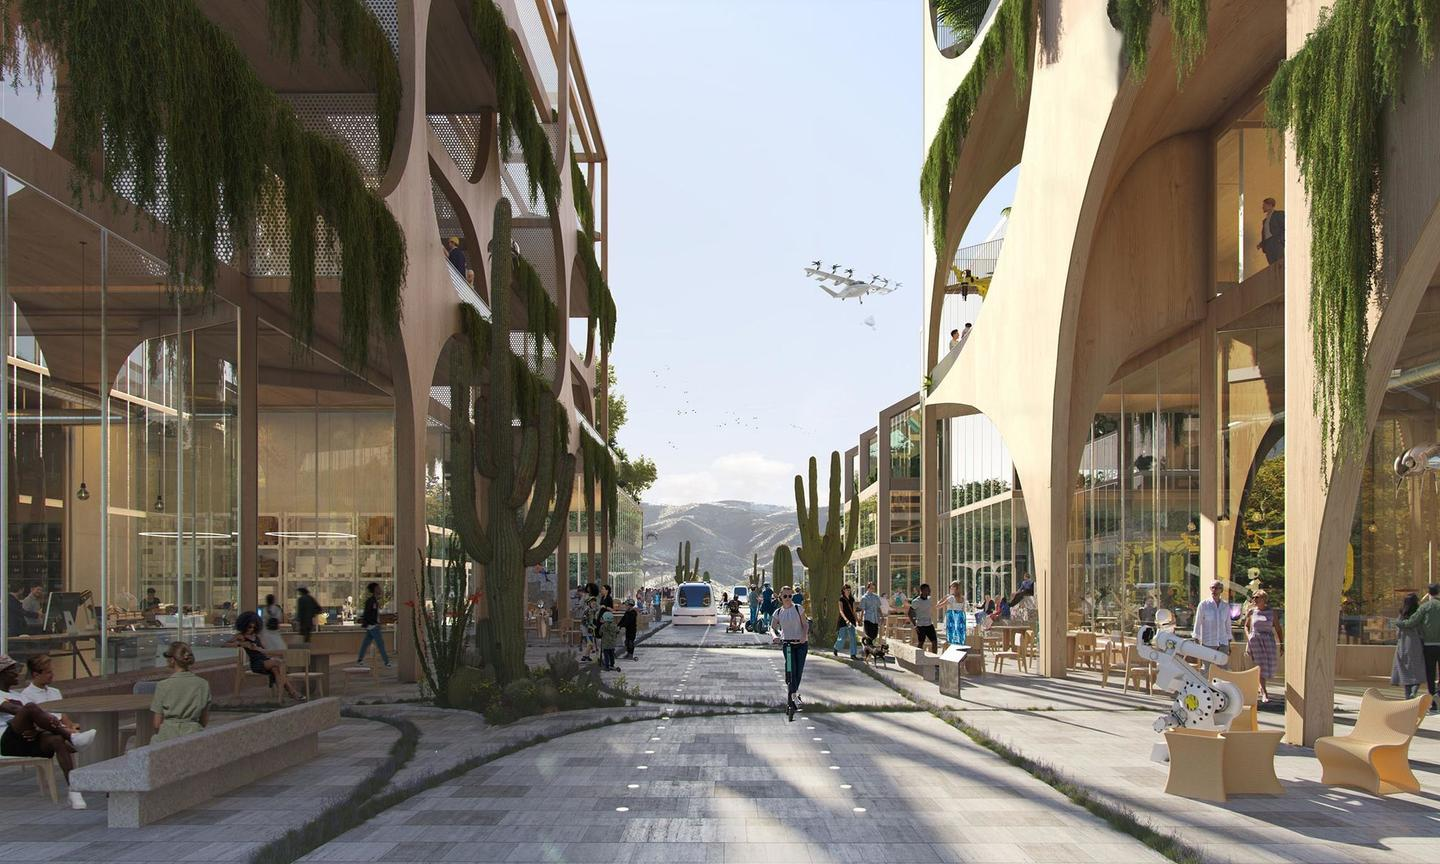 Telosa would be organized around pedestrians and cyclists, but would also feature slow-moving autonomous vehicles